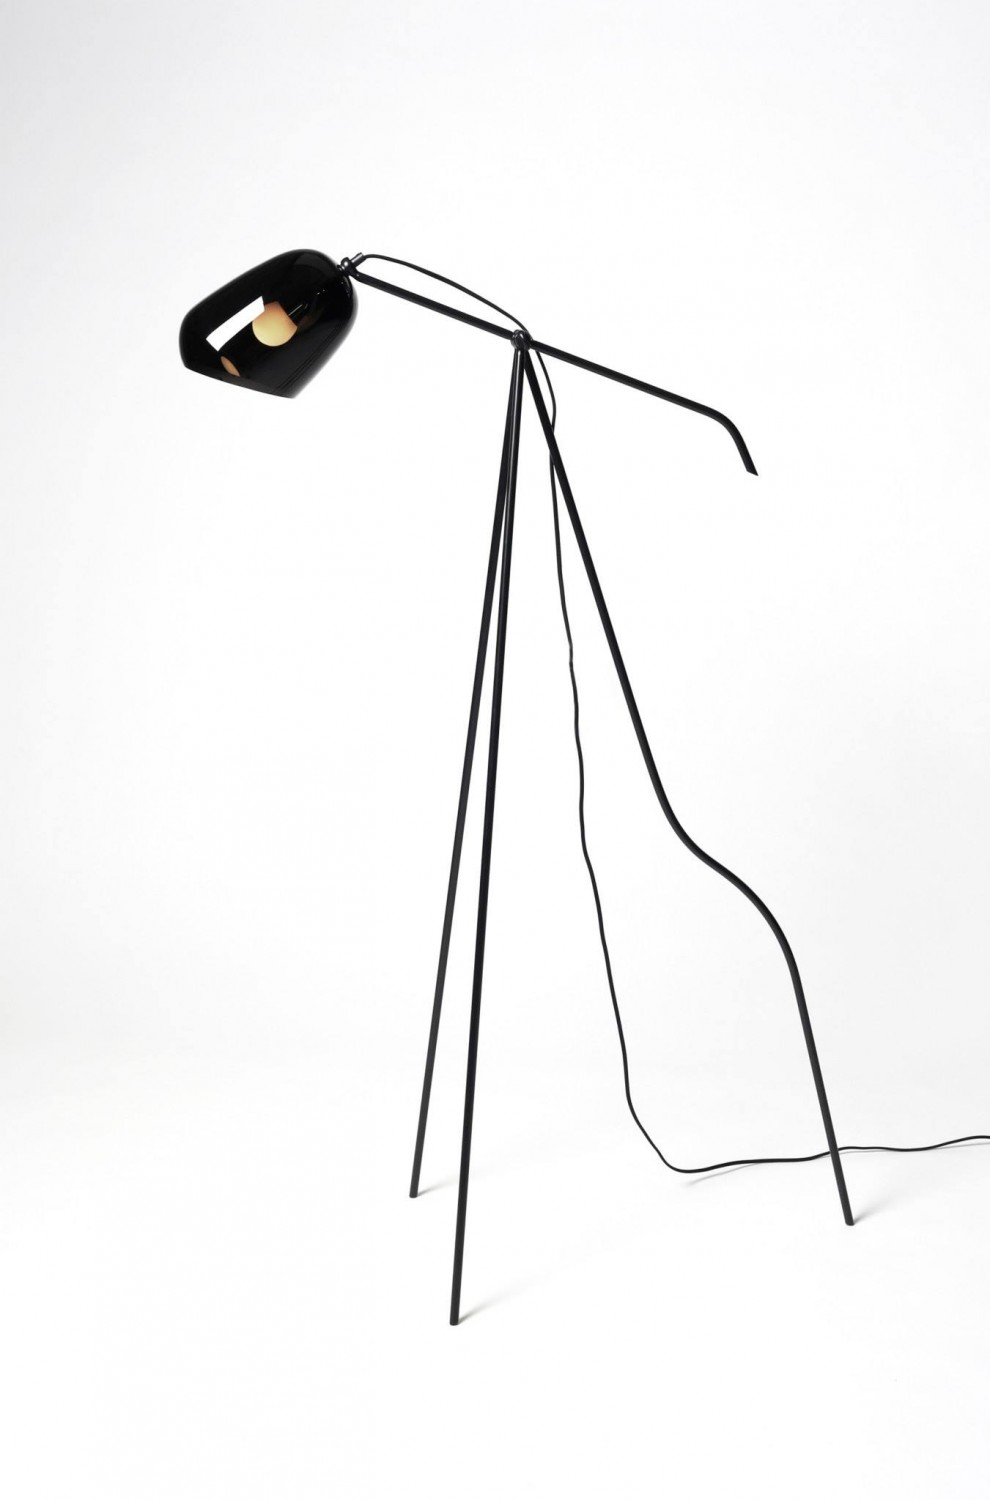 Oma floor lamp by Katriina Nuutinen  | Quick Dose of Inspiration #43 | Flodeau.com